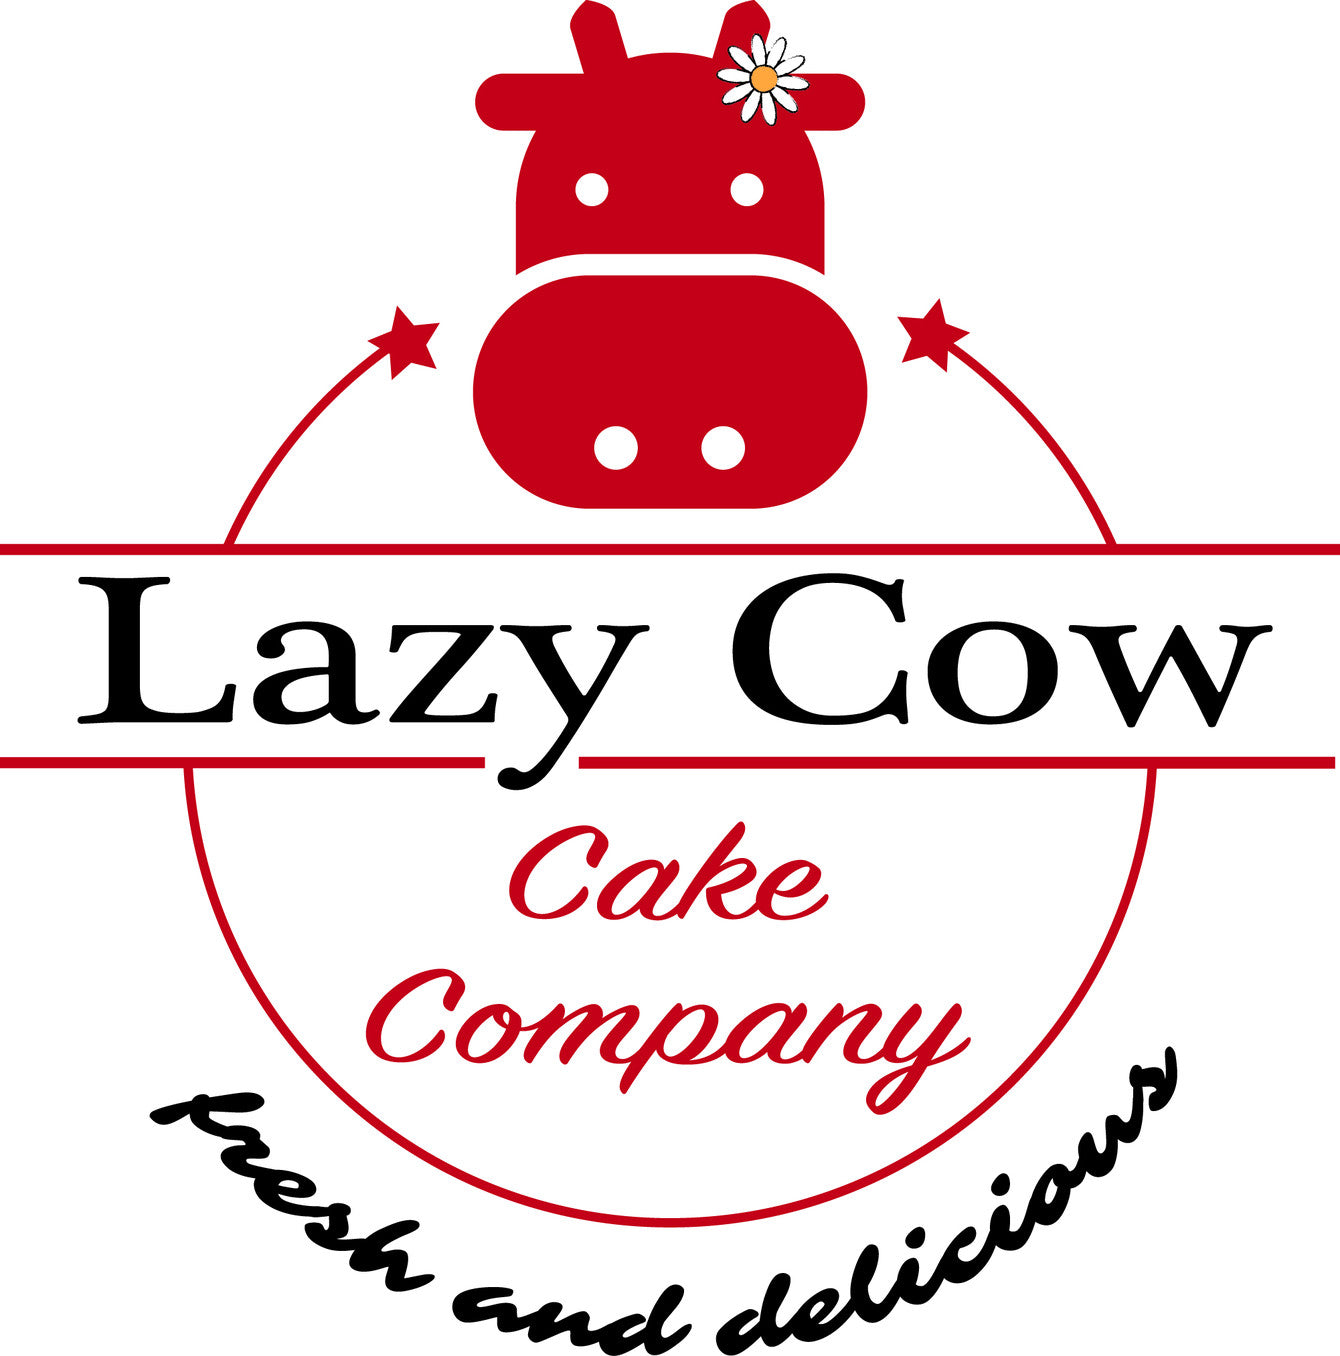 Lazy Cow Cake Company